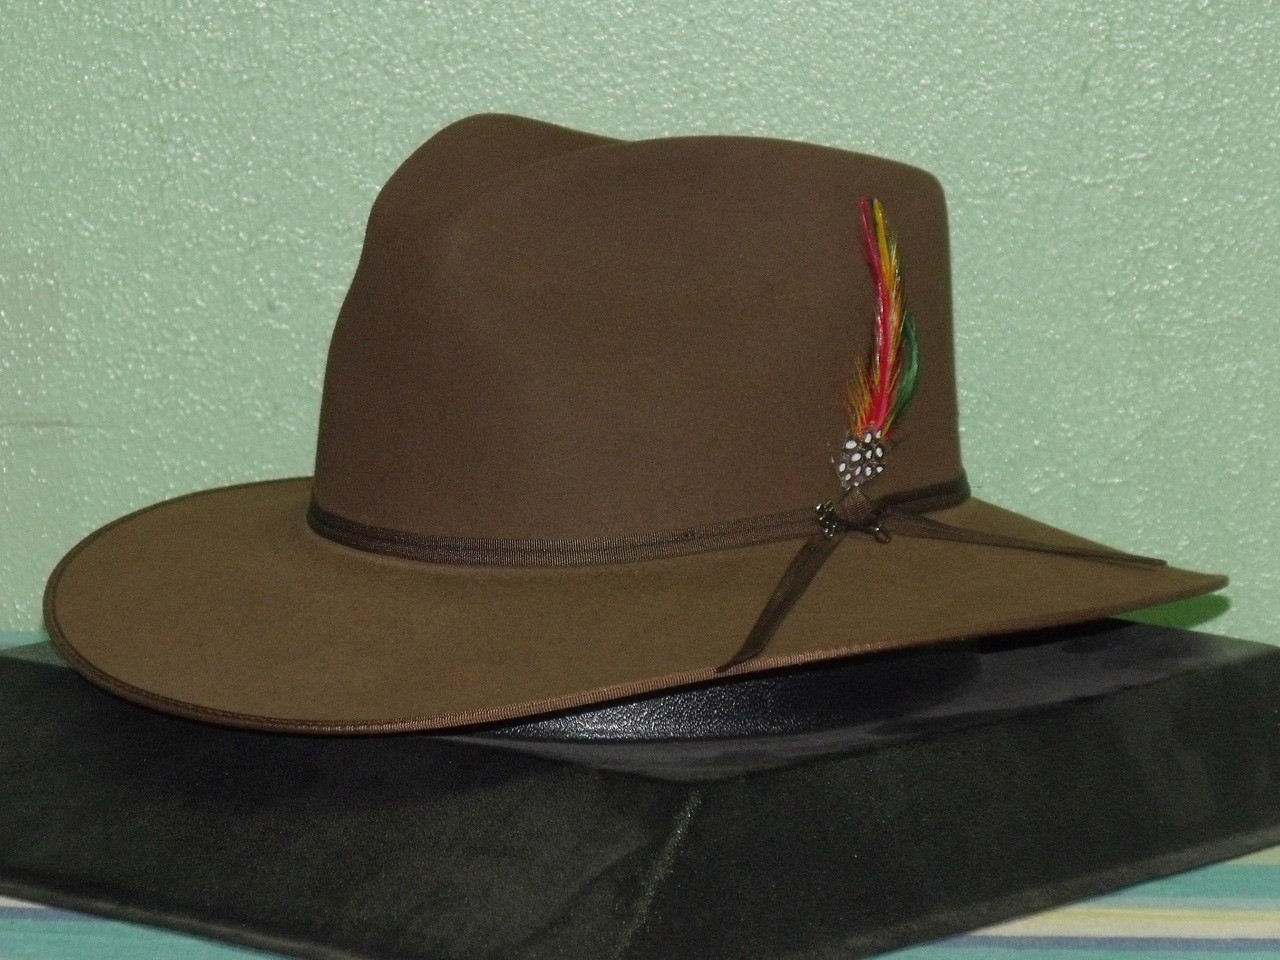 Stetson Dune 5X Fur Pinch Front Cowboy Hat - One 2 mini Ranch c228e79752d5